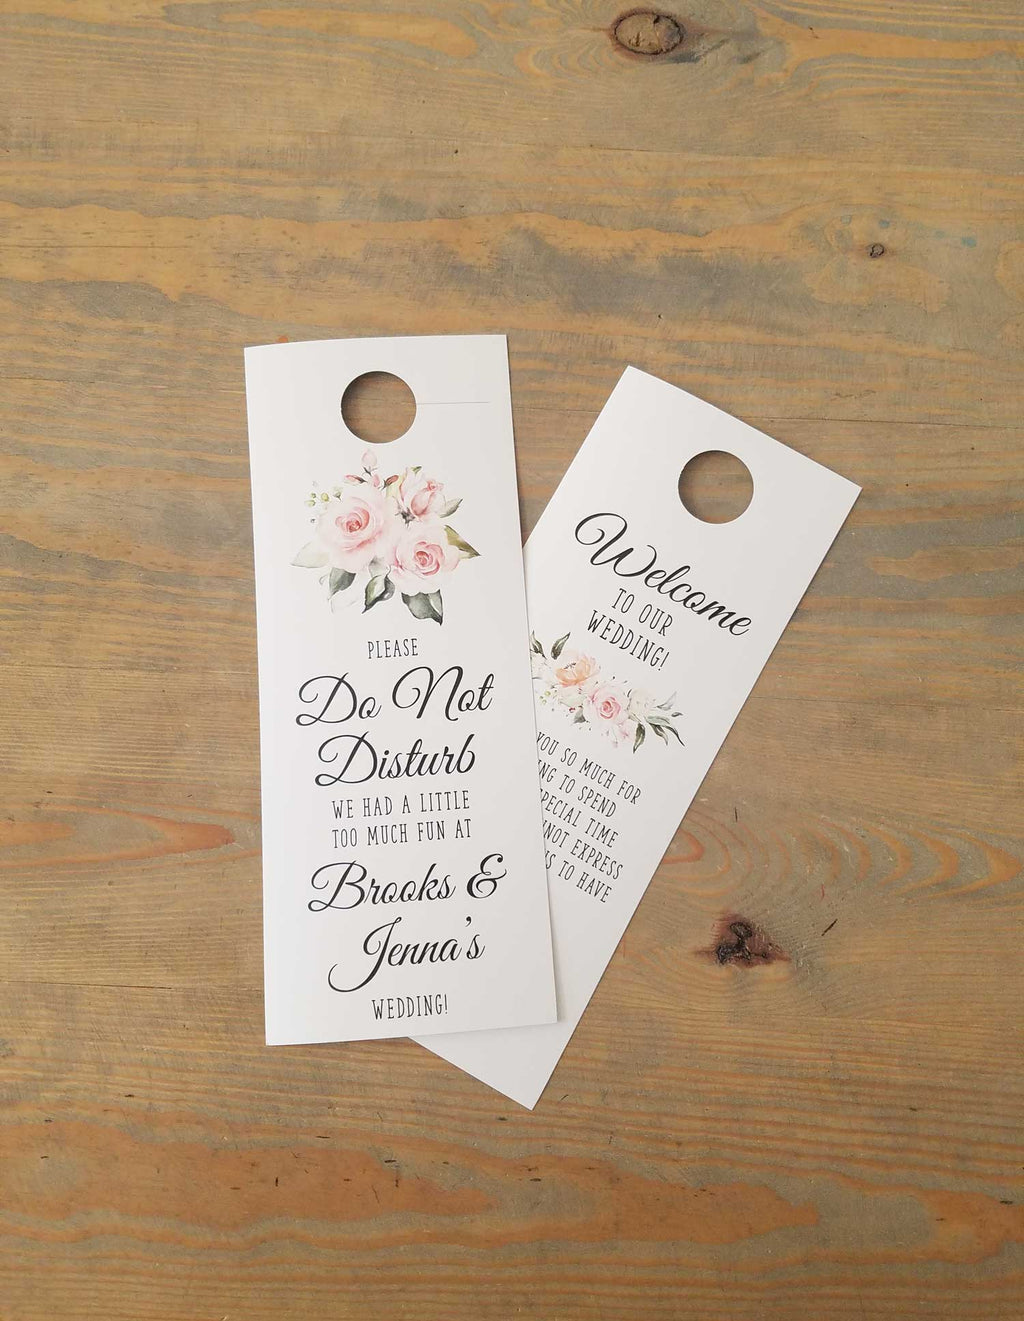 Blush and Greenery Bouquet Do Not Disturb Door Hanger